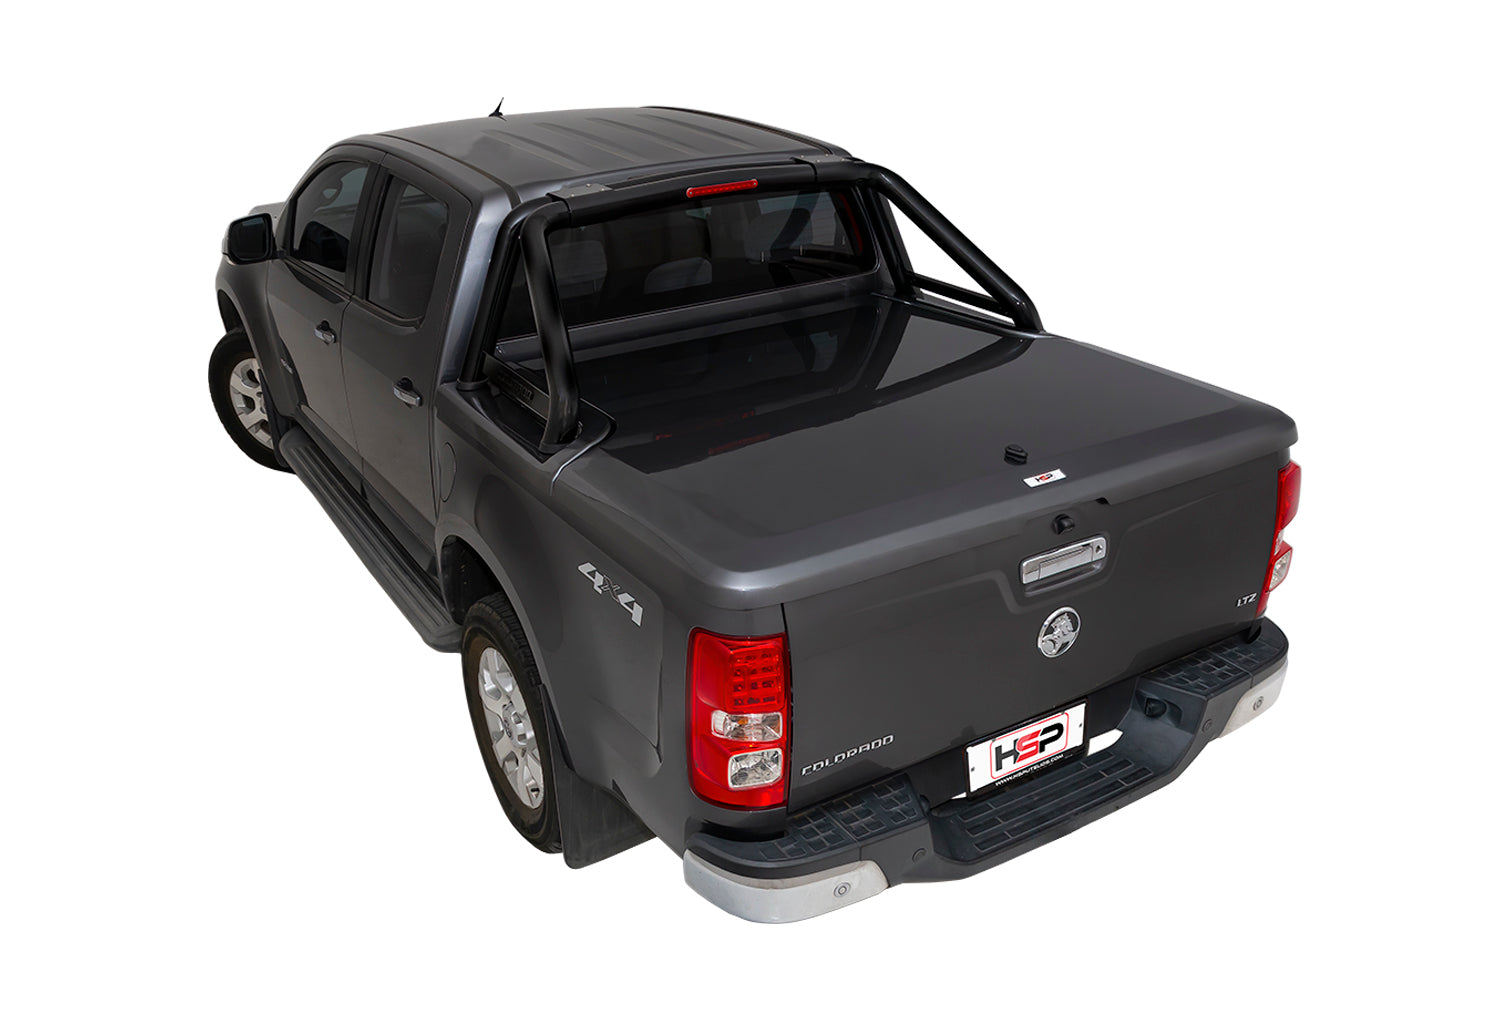 HSP 3PCE Manual SINGLE CENTER LOCK – Holden Dual Cab RG Colorado Hard Lid